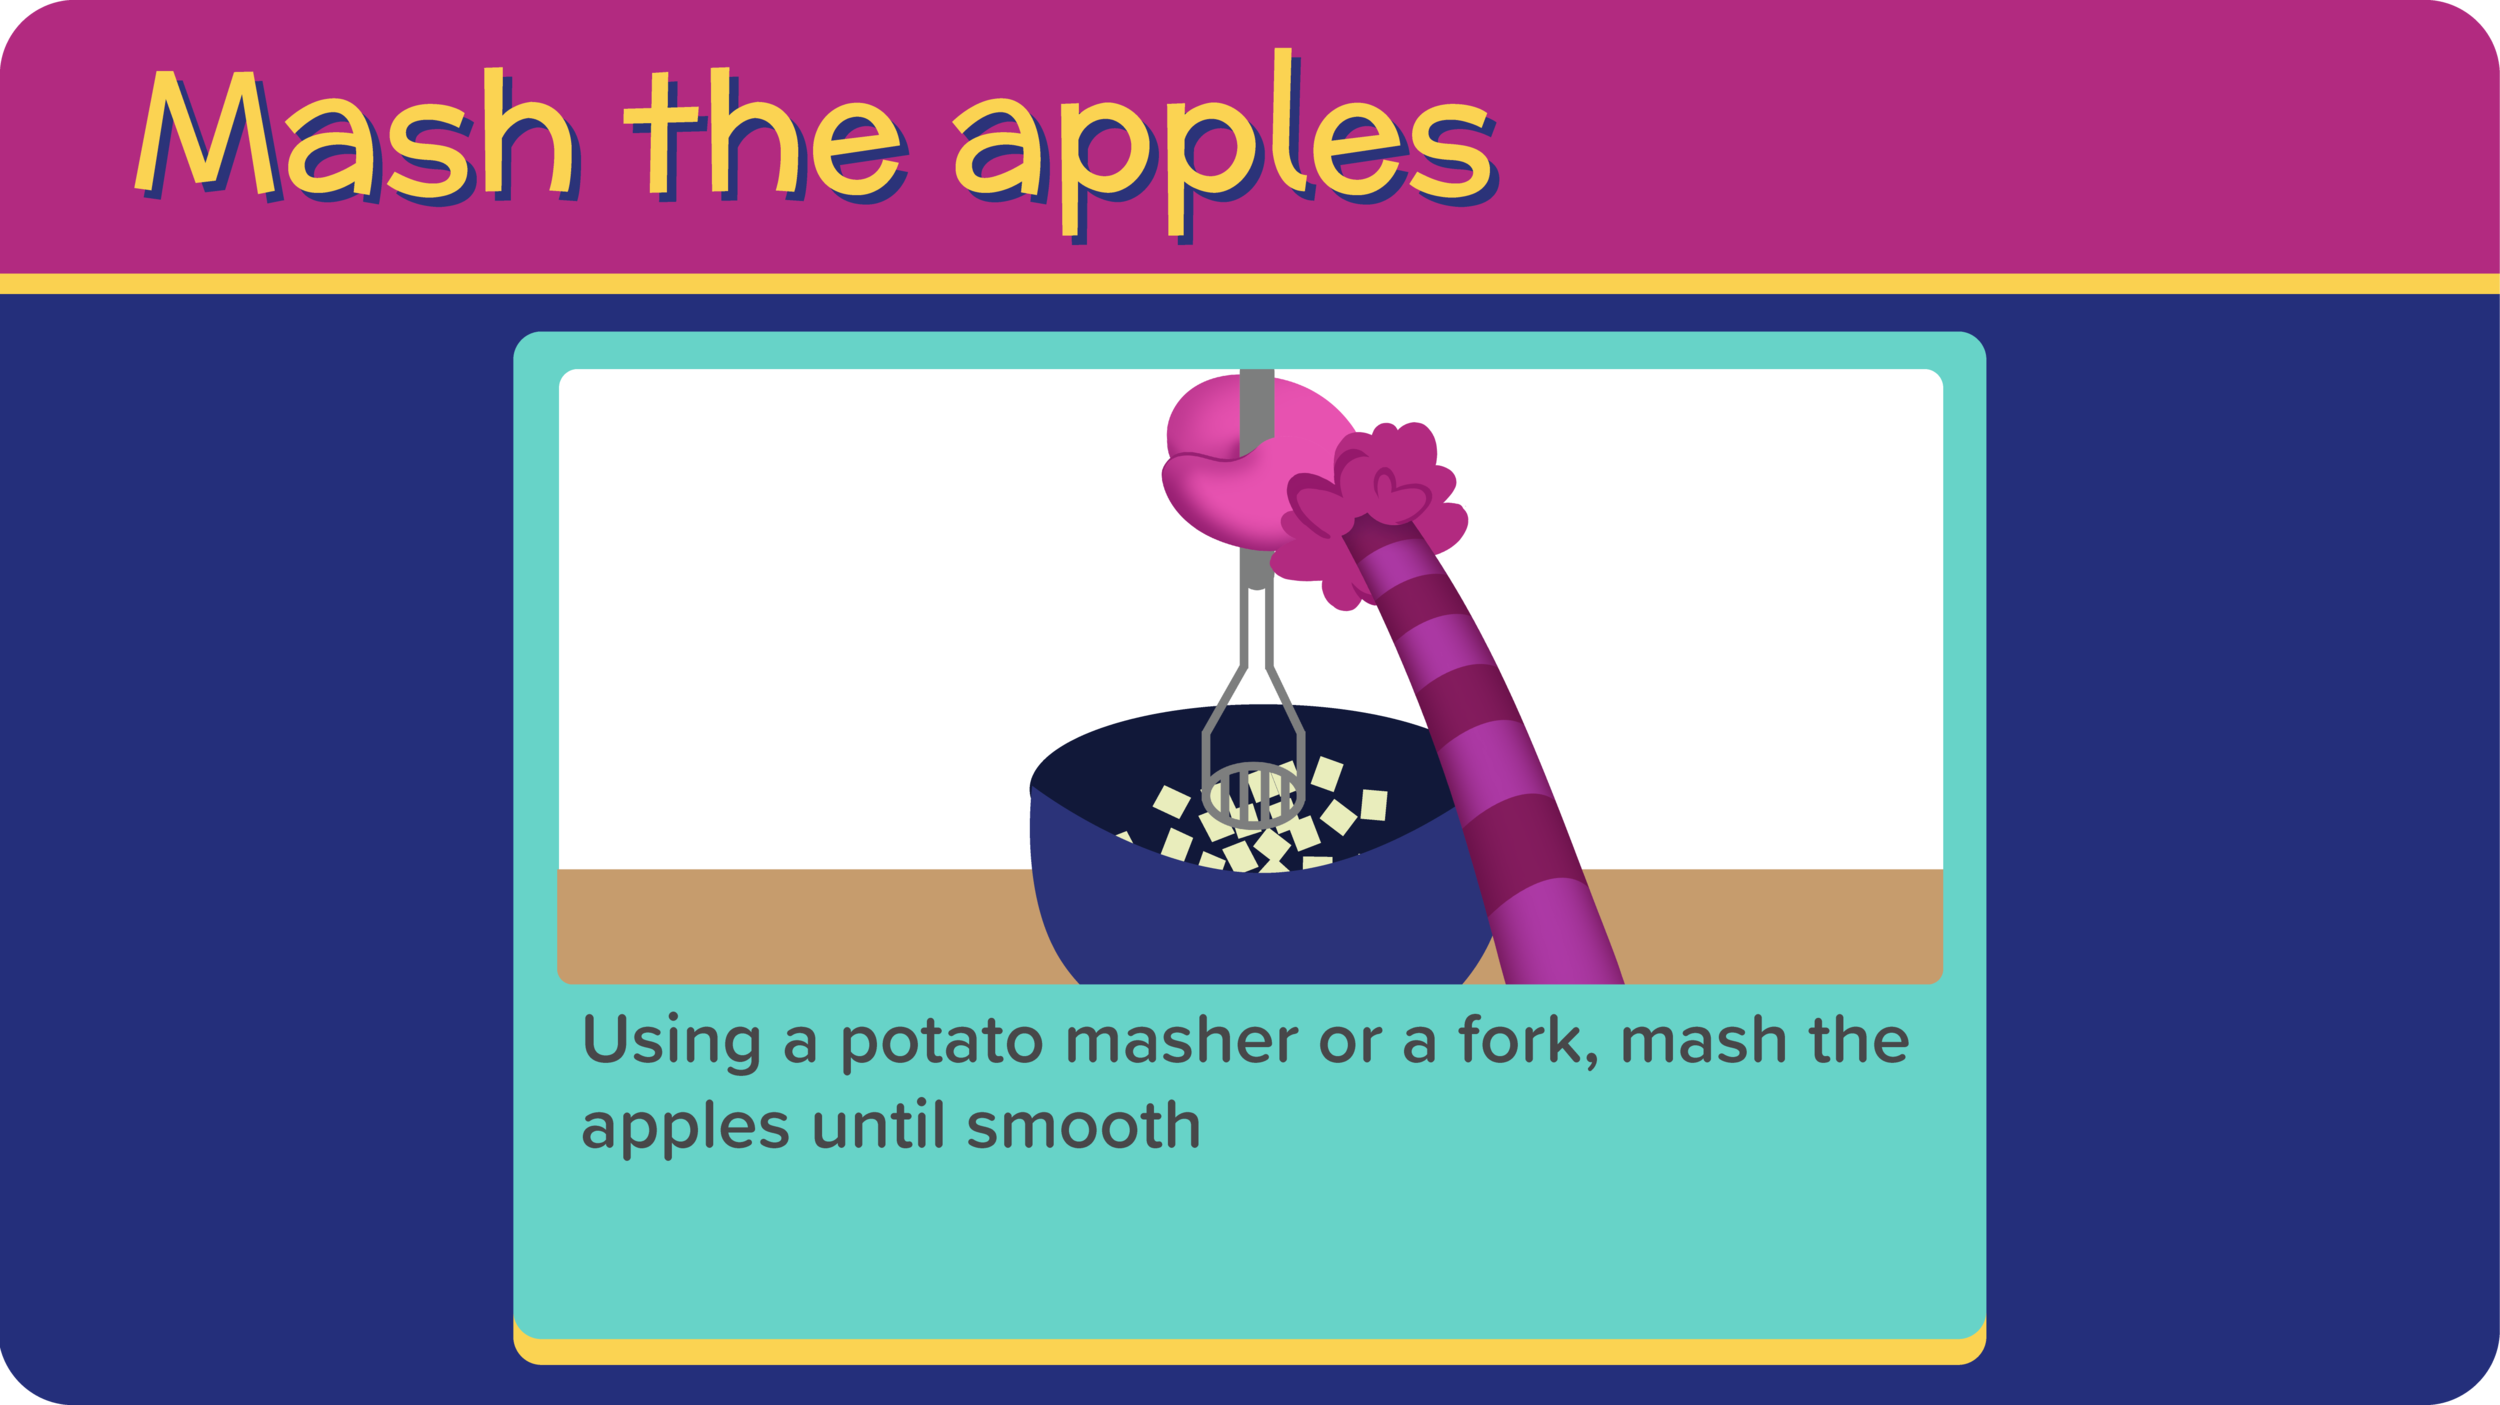 19_AppleSauce_Mash apples-01.png